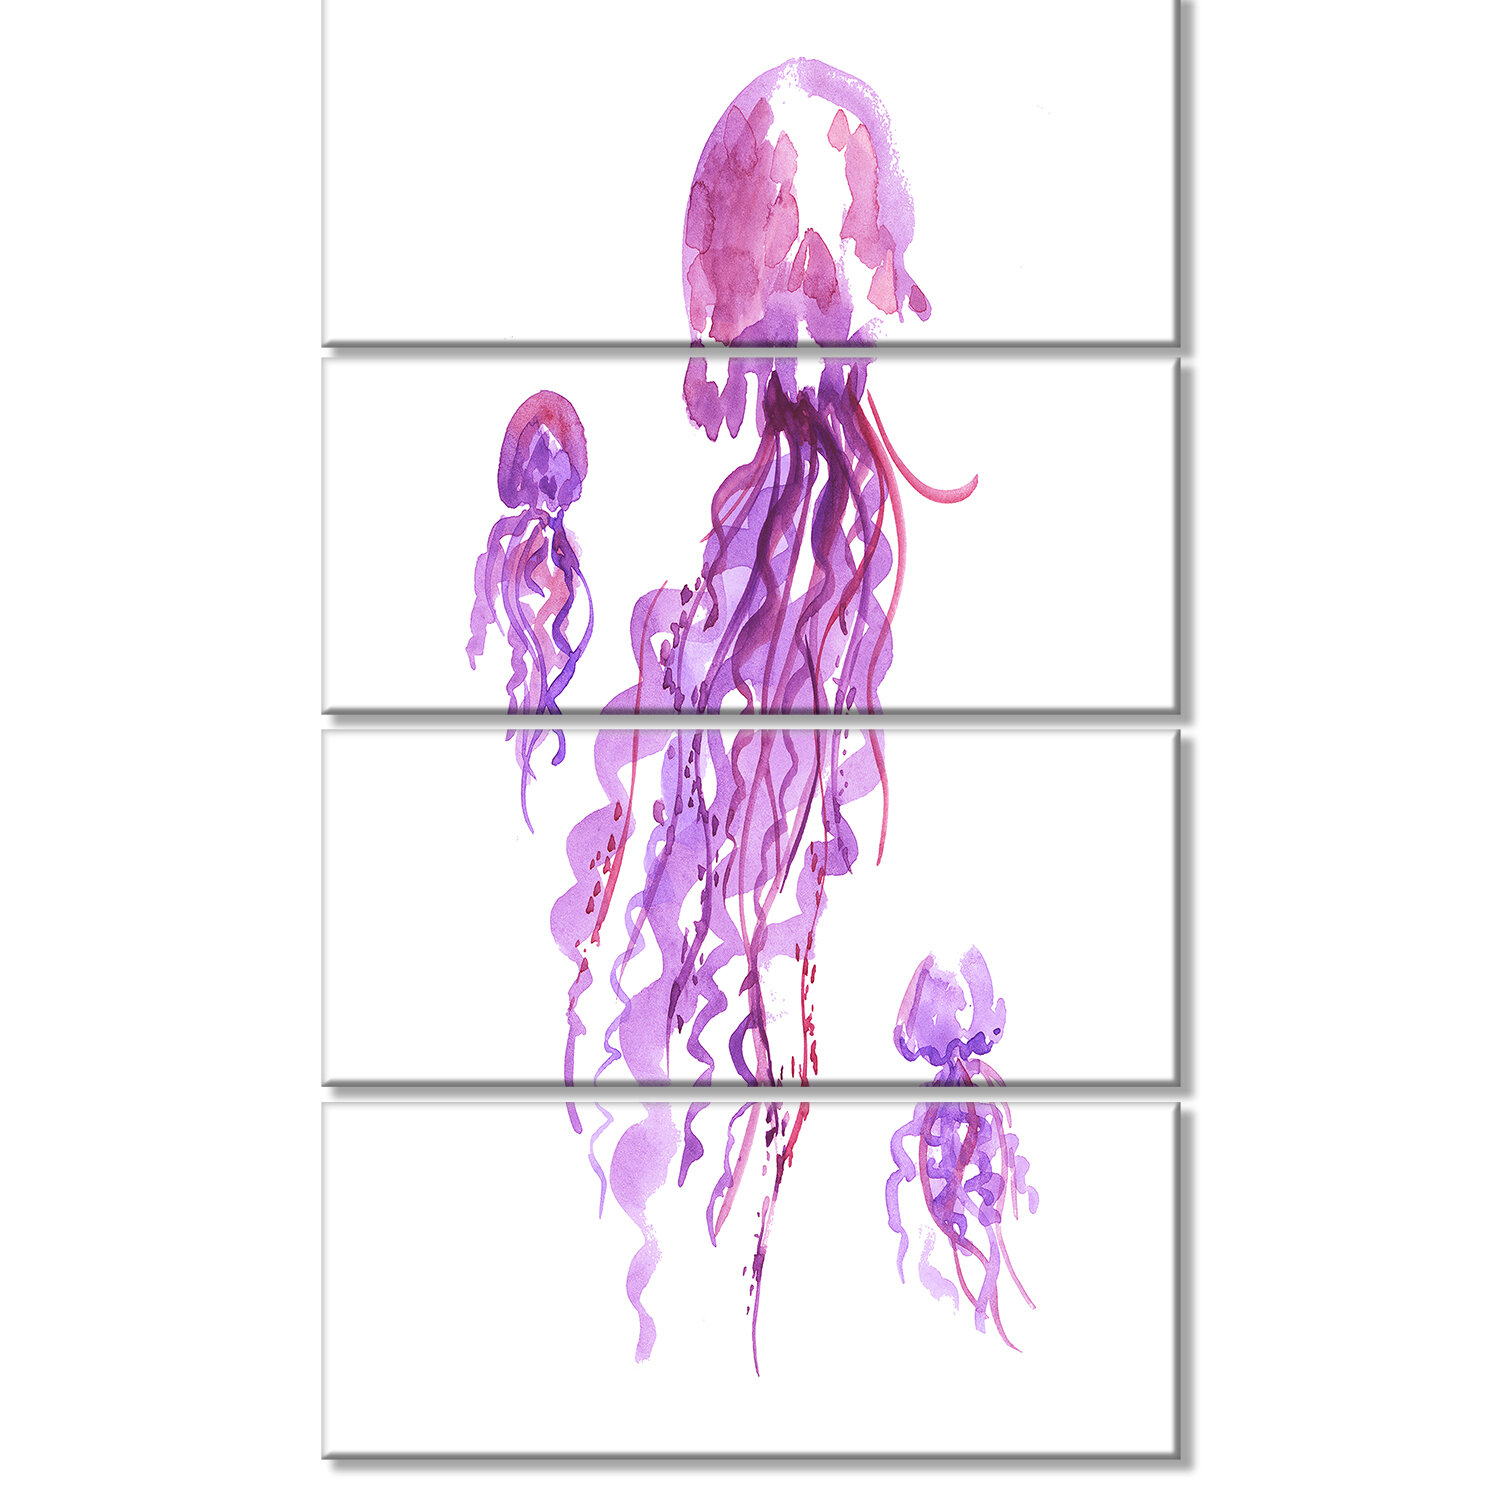 Designart Purple Jellyfish Watercolor 4 Piece Painting Print On Wrapped Canvas Set Wayfair